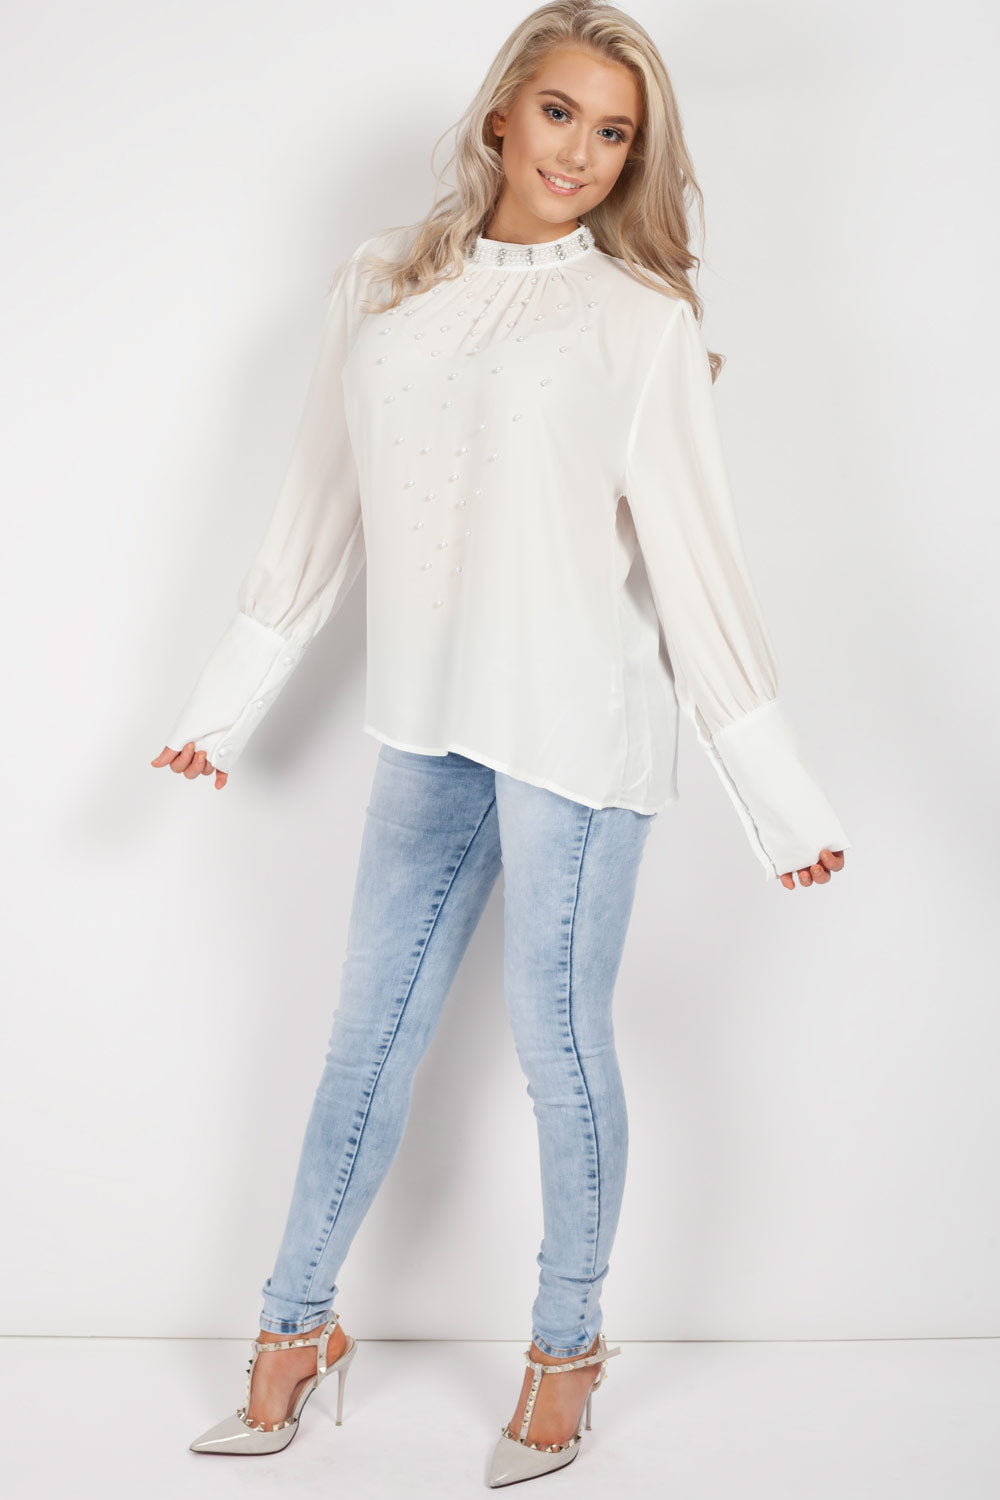 diamante top uk cream white